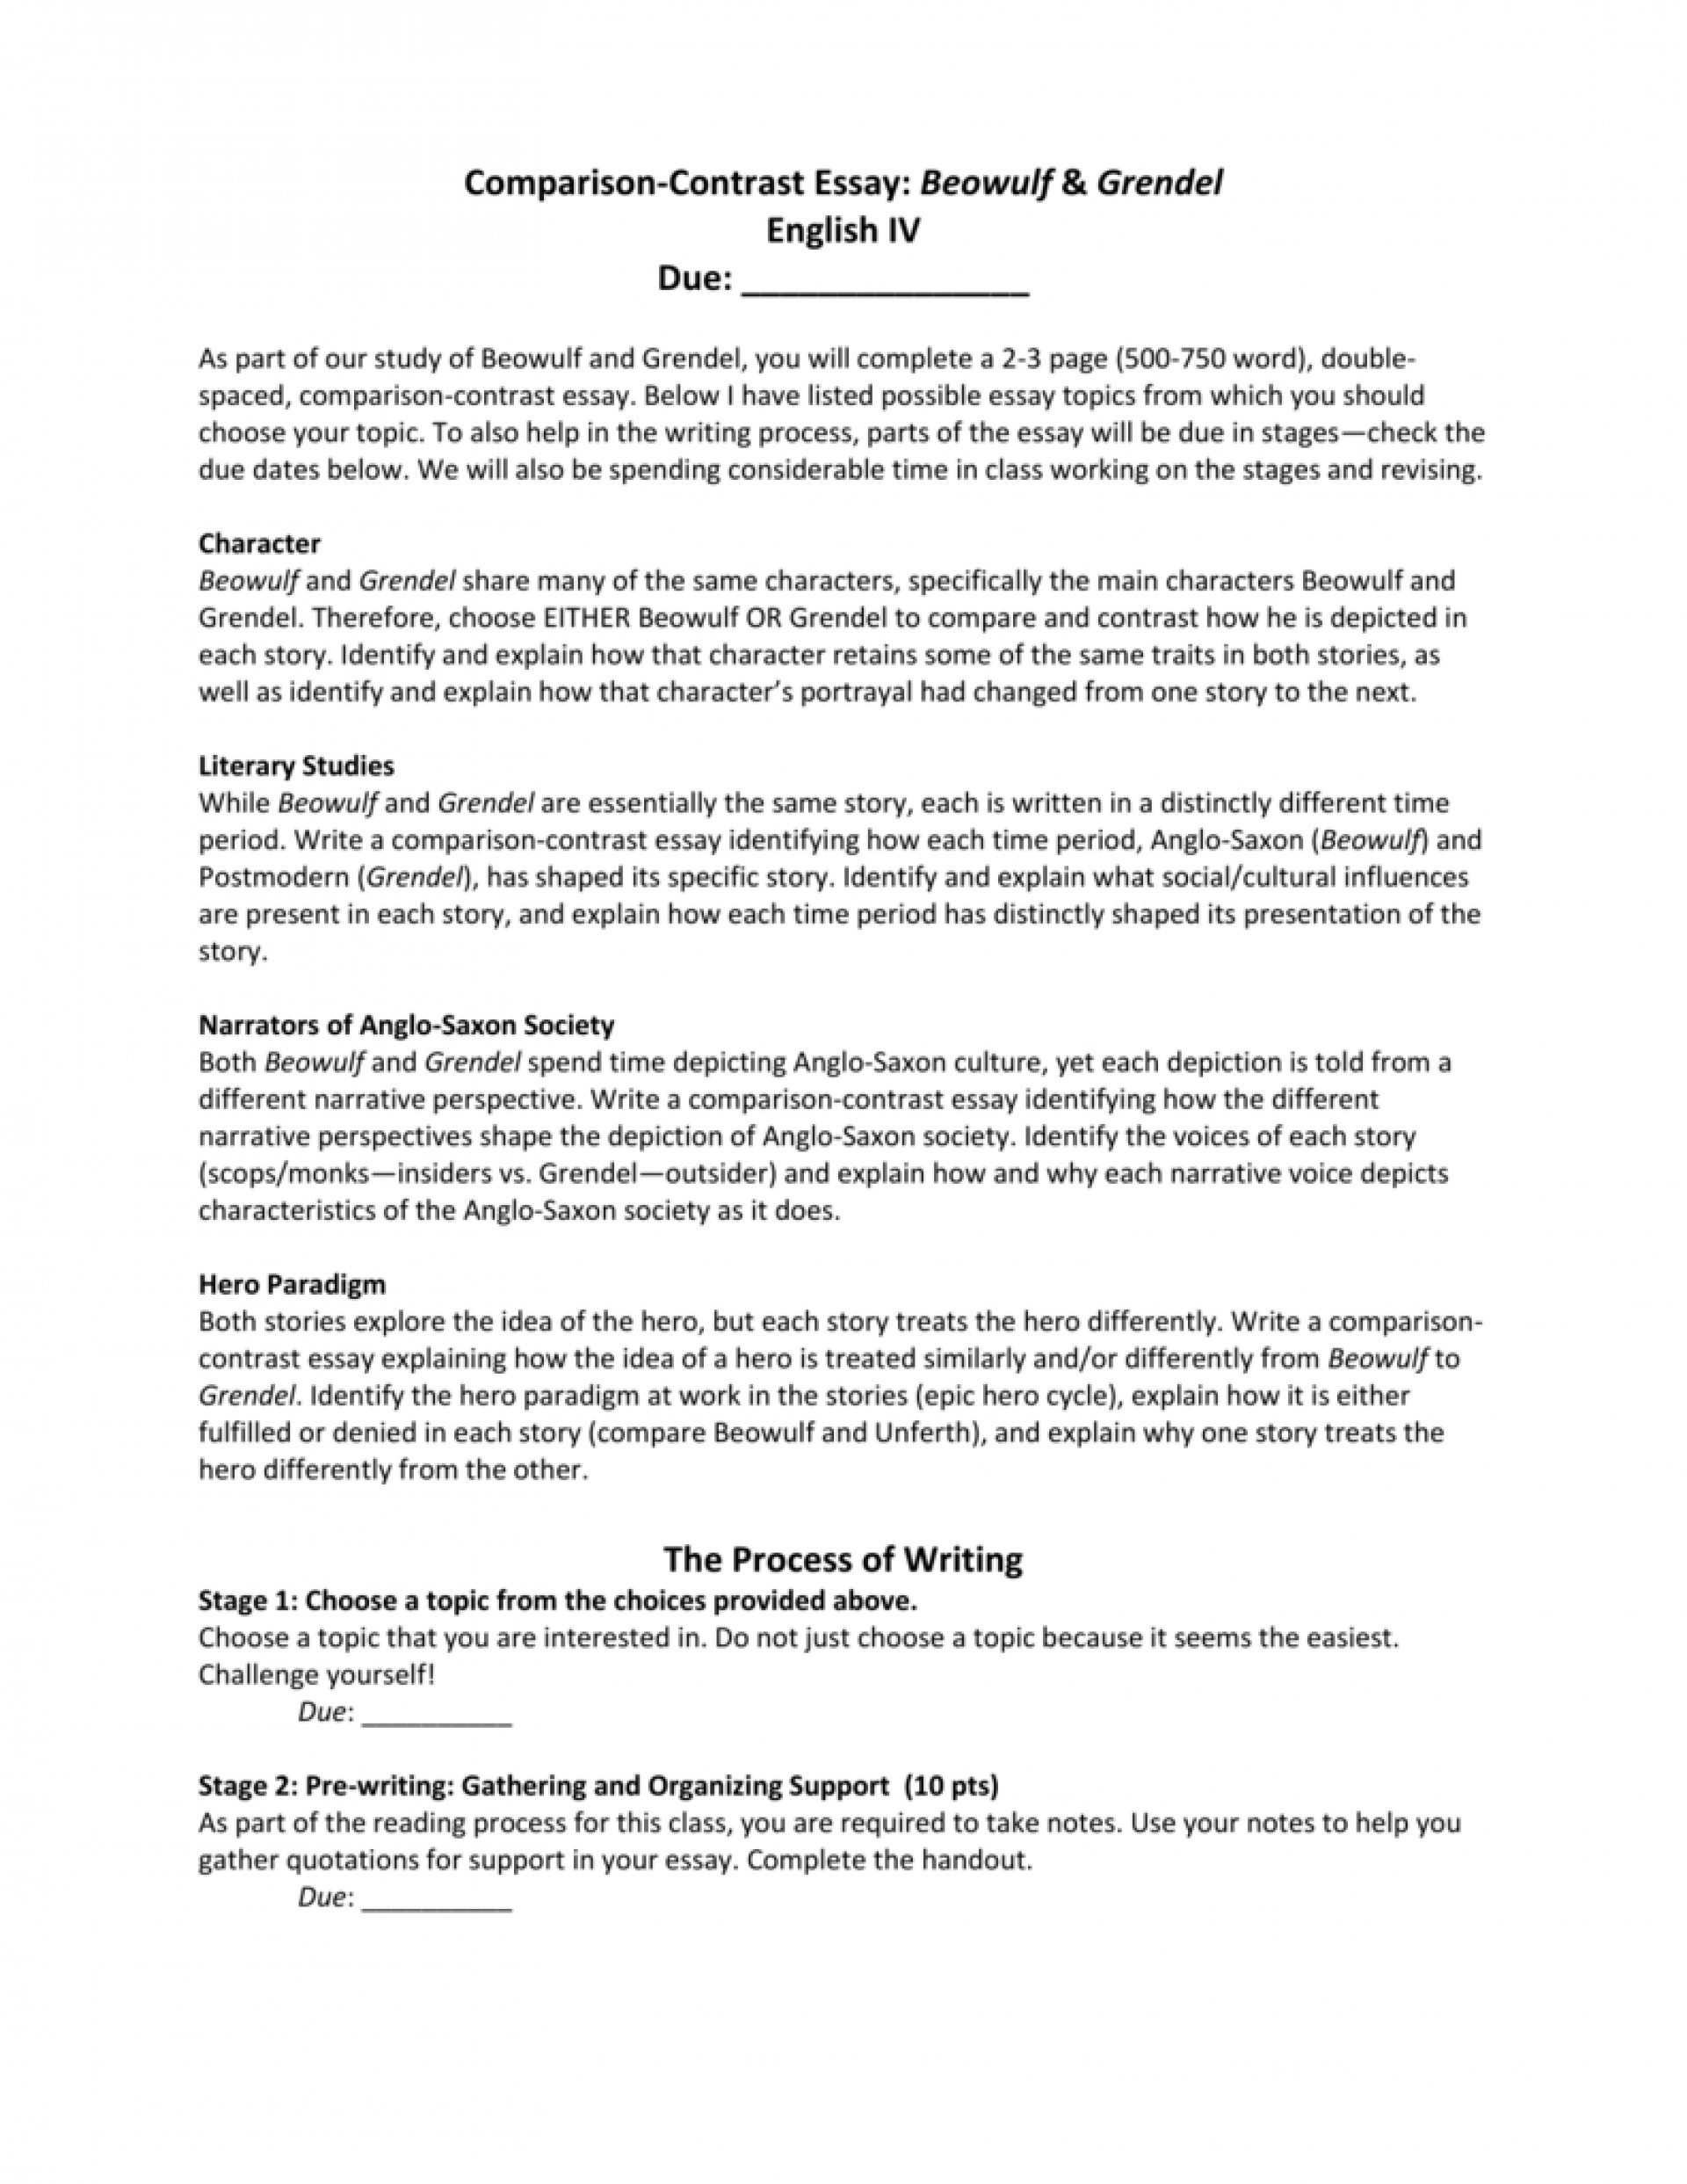 009 Essay Example 008061732 1 Comparing And Unique Contrasting Comparison Contrast Sample Pdf Compare Structure University Topics On Health 1920